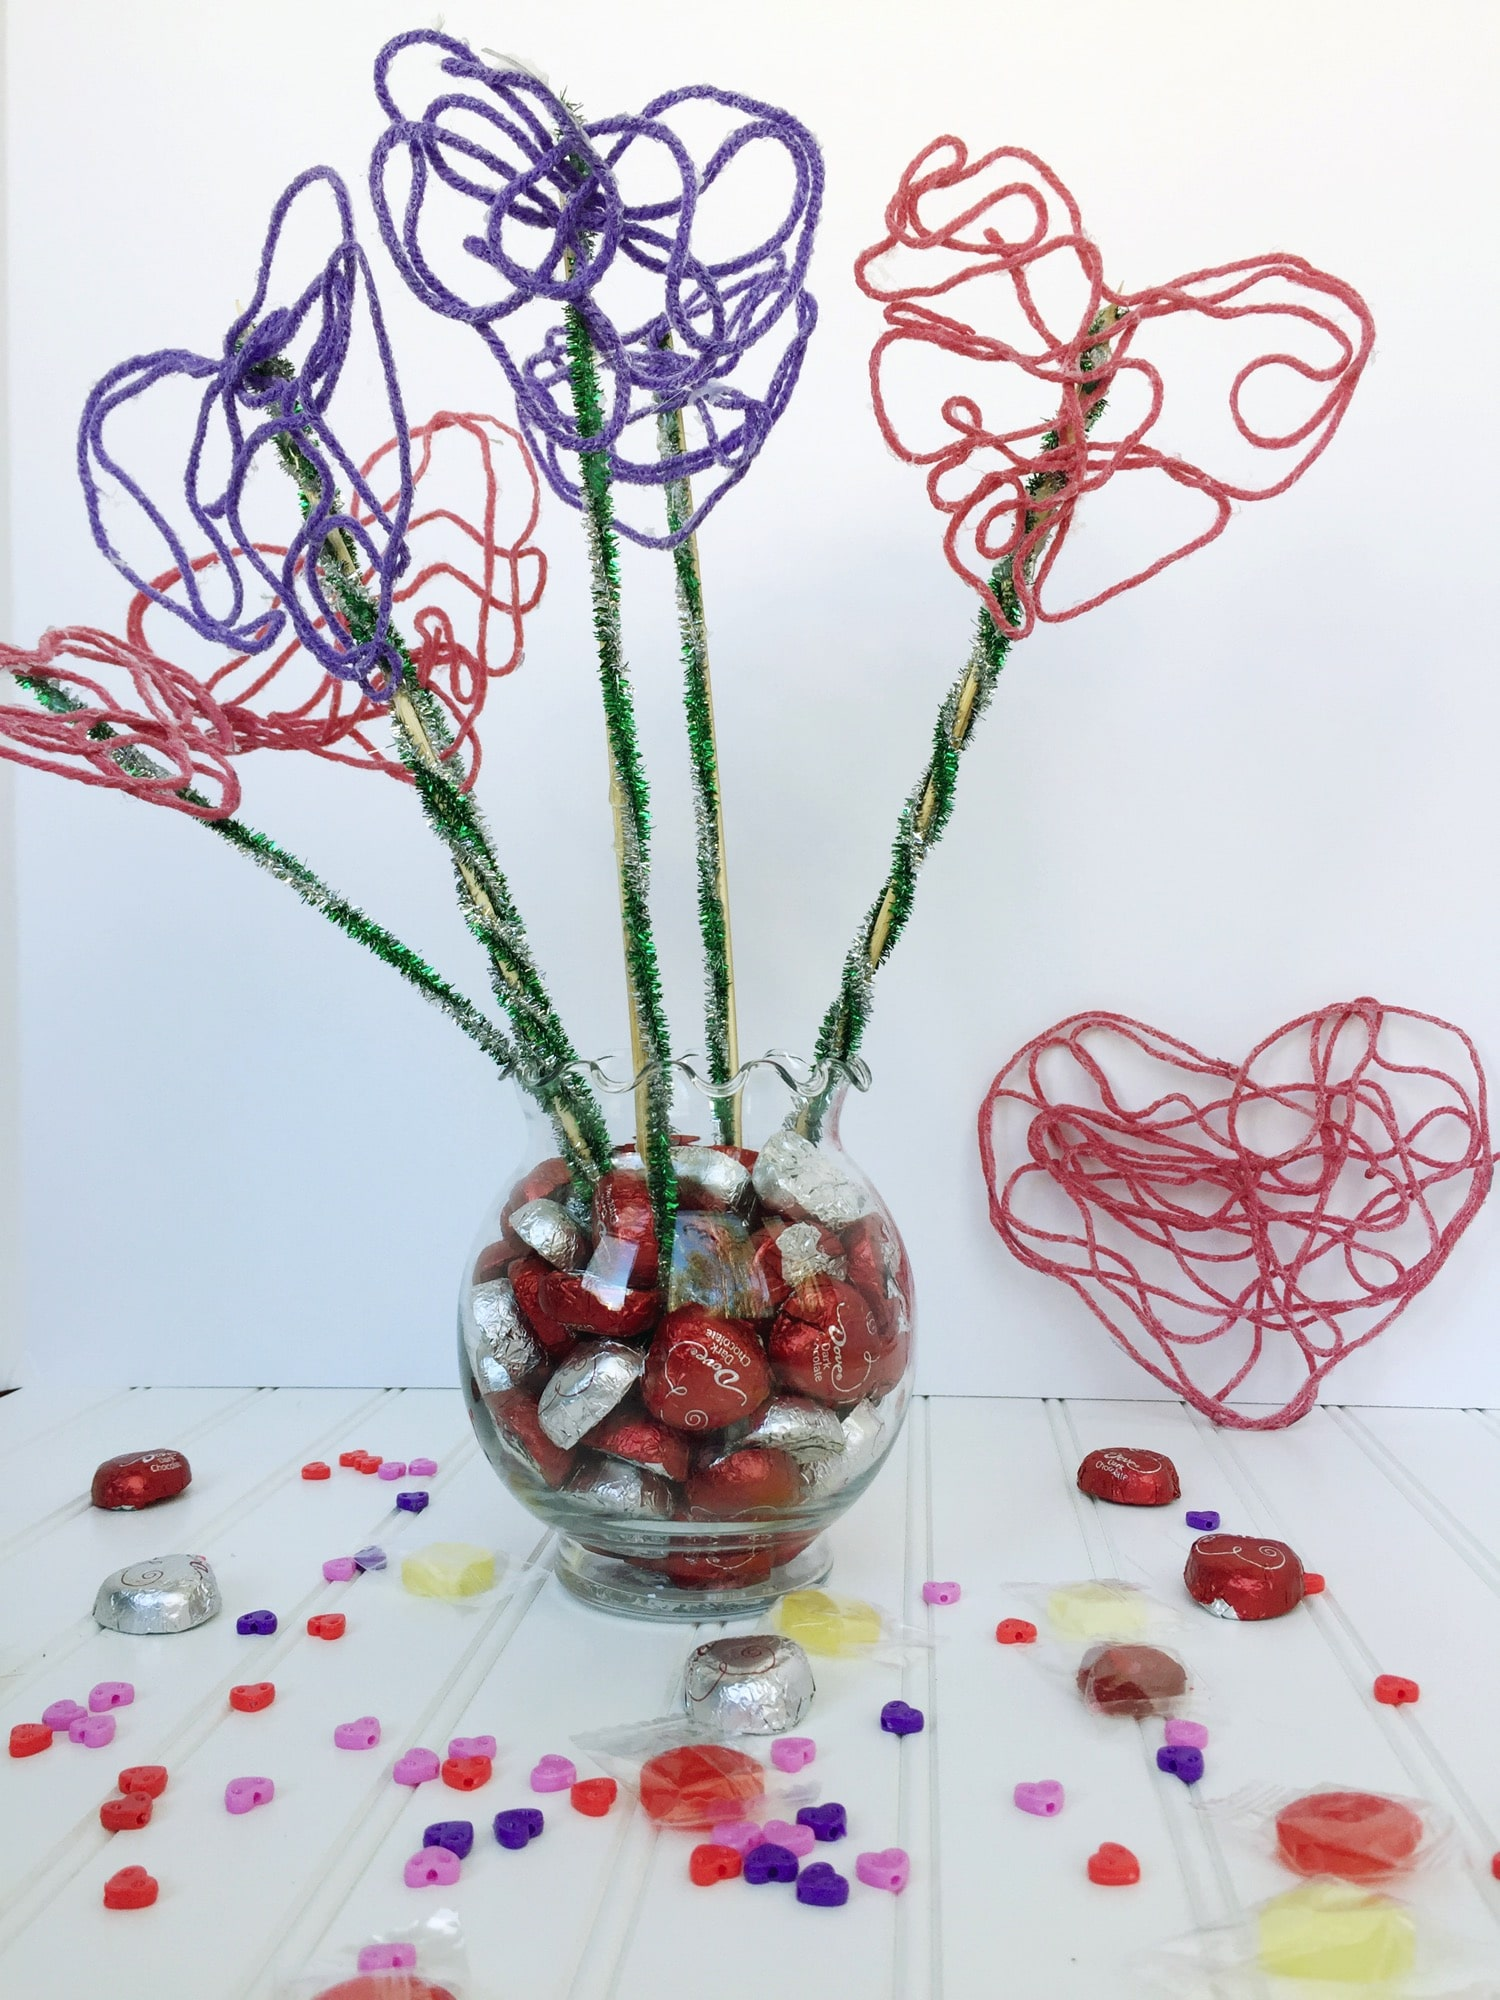 Creative galaxy yarn heart centerpiece bouquet final